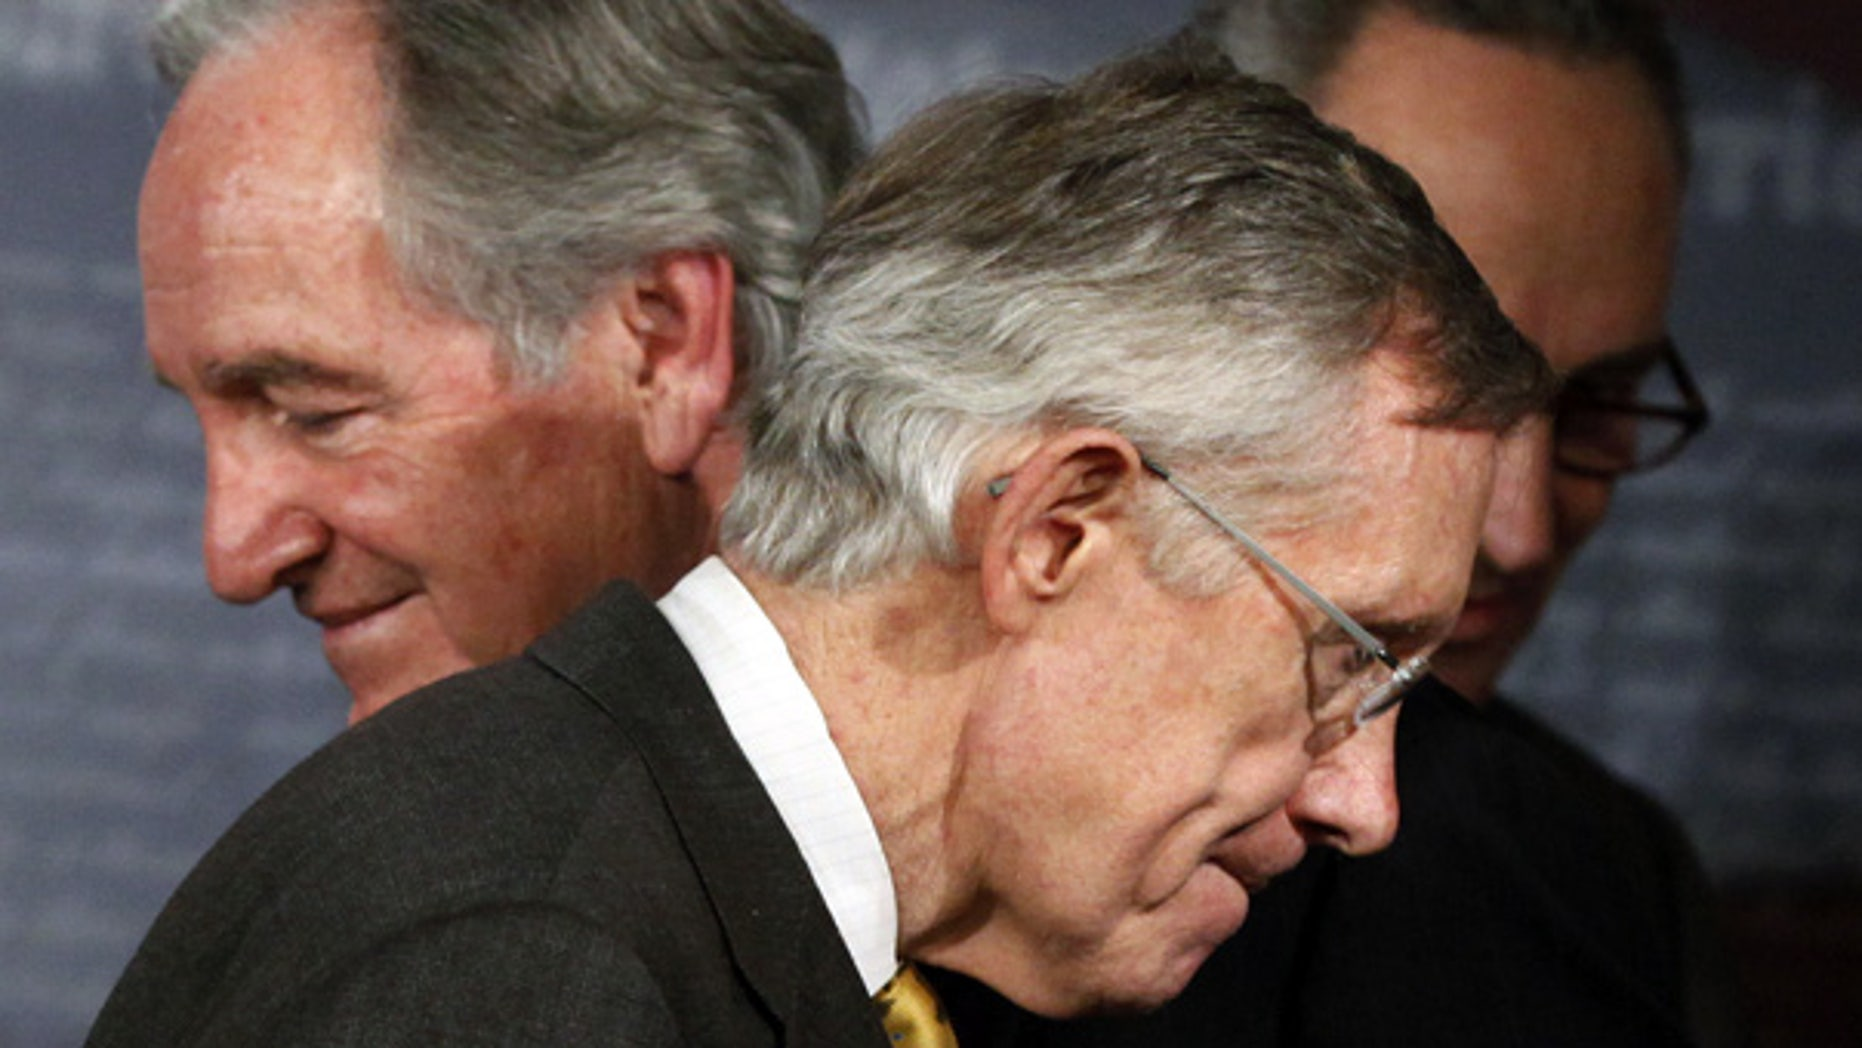 Nov. 18: Senate Majority Leader Sen. Harry Reid, D-Nev., with Sens. Tom Harkin, D-Iowa, left, and Charles Schumer, D-N.Y. at a news conference on Capitol Hill. (AP)